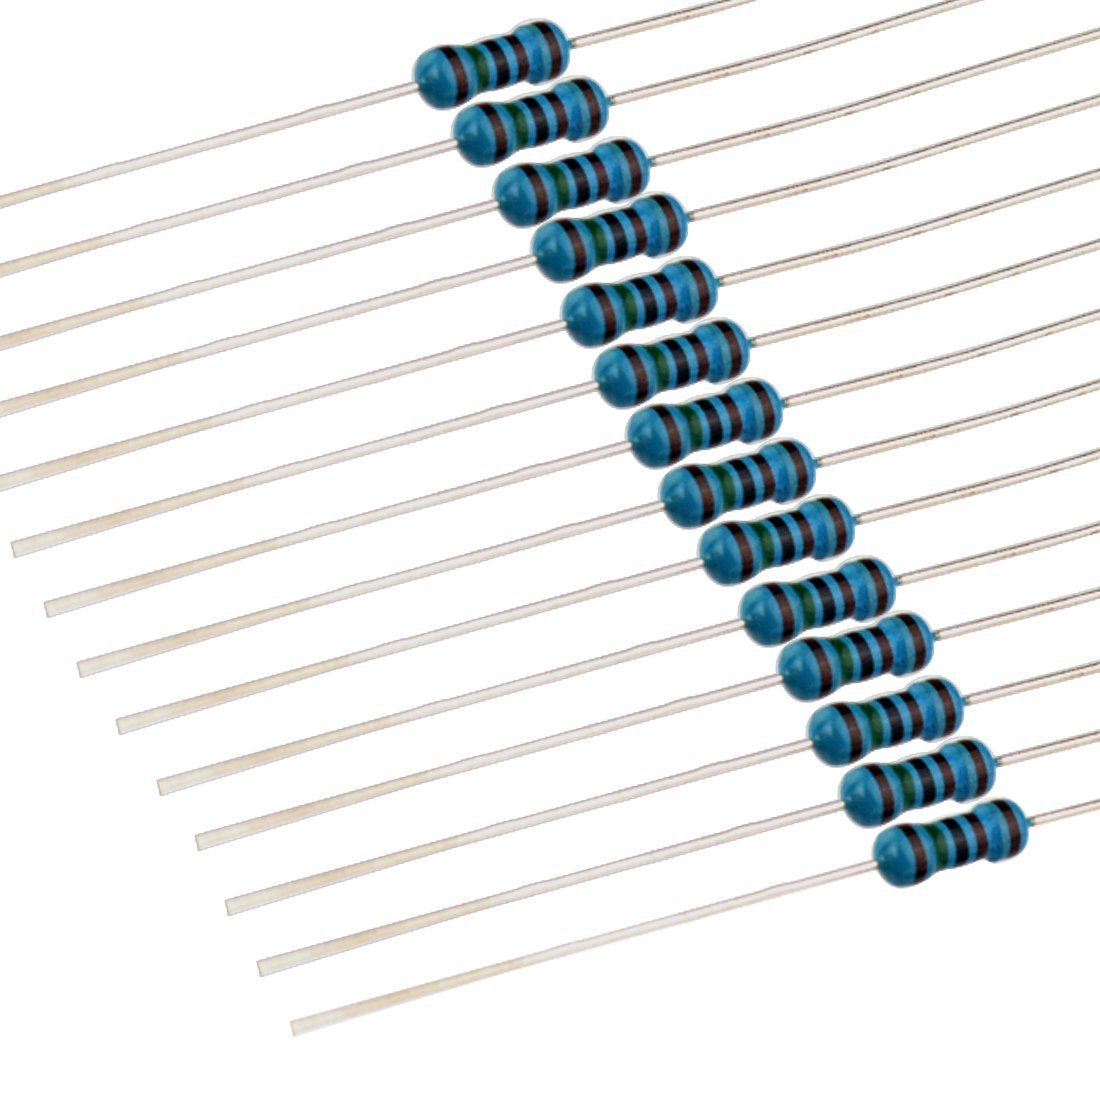 RC 1/4W 1% 130 Value 2600 Piece Resistor Kit,1 Ohm - 3M Ohm 1/4W Metal Film Resistors Assortment